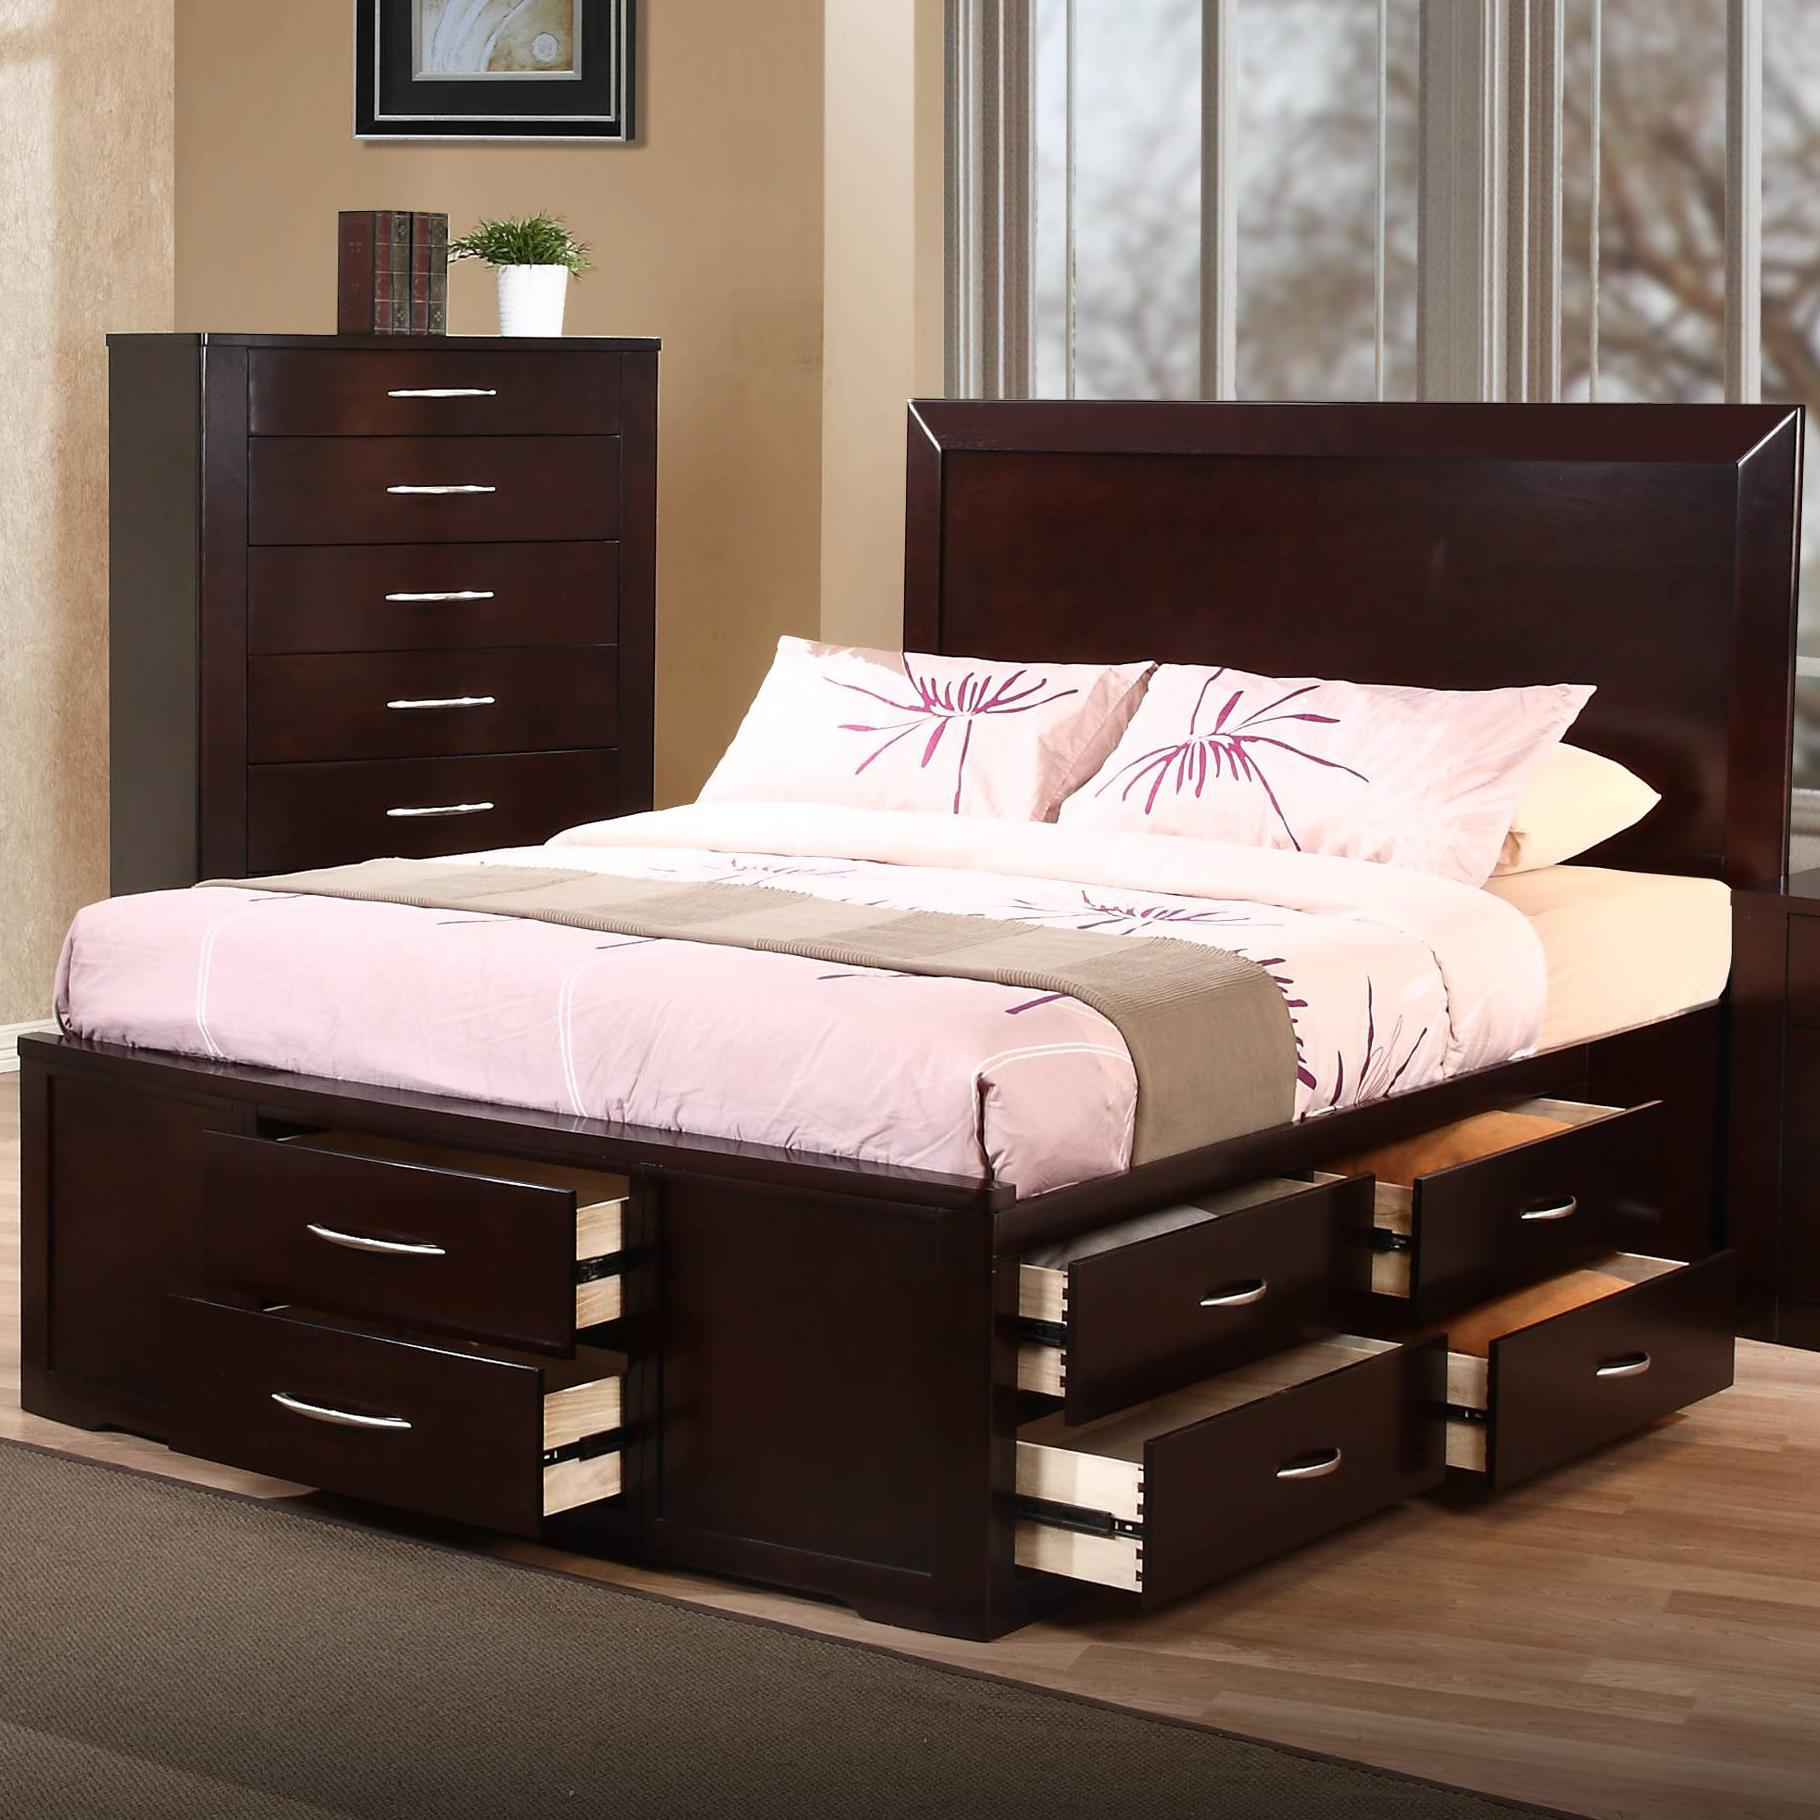 King Size Bed Size 20 King Size Bed Design To Beautify Your Couple 39s Bedroom